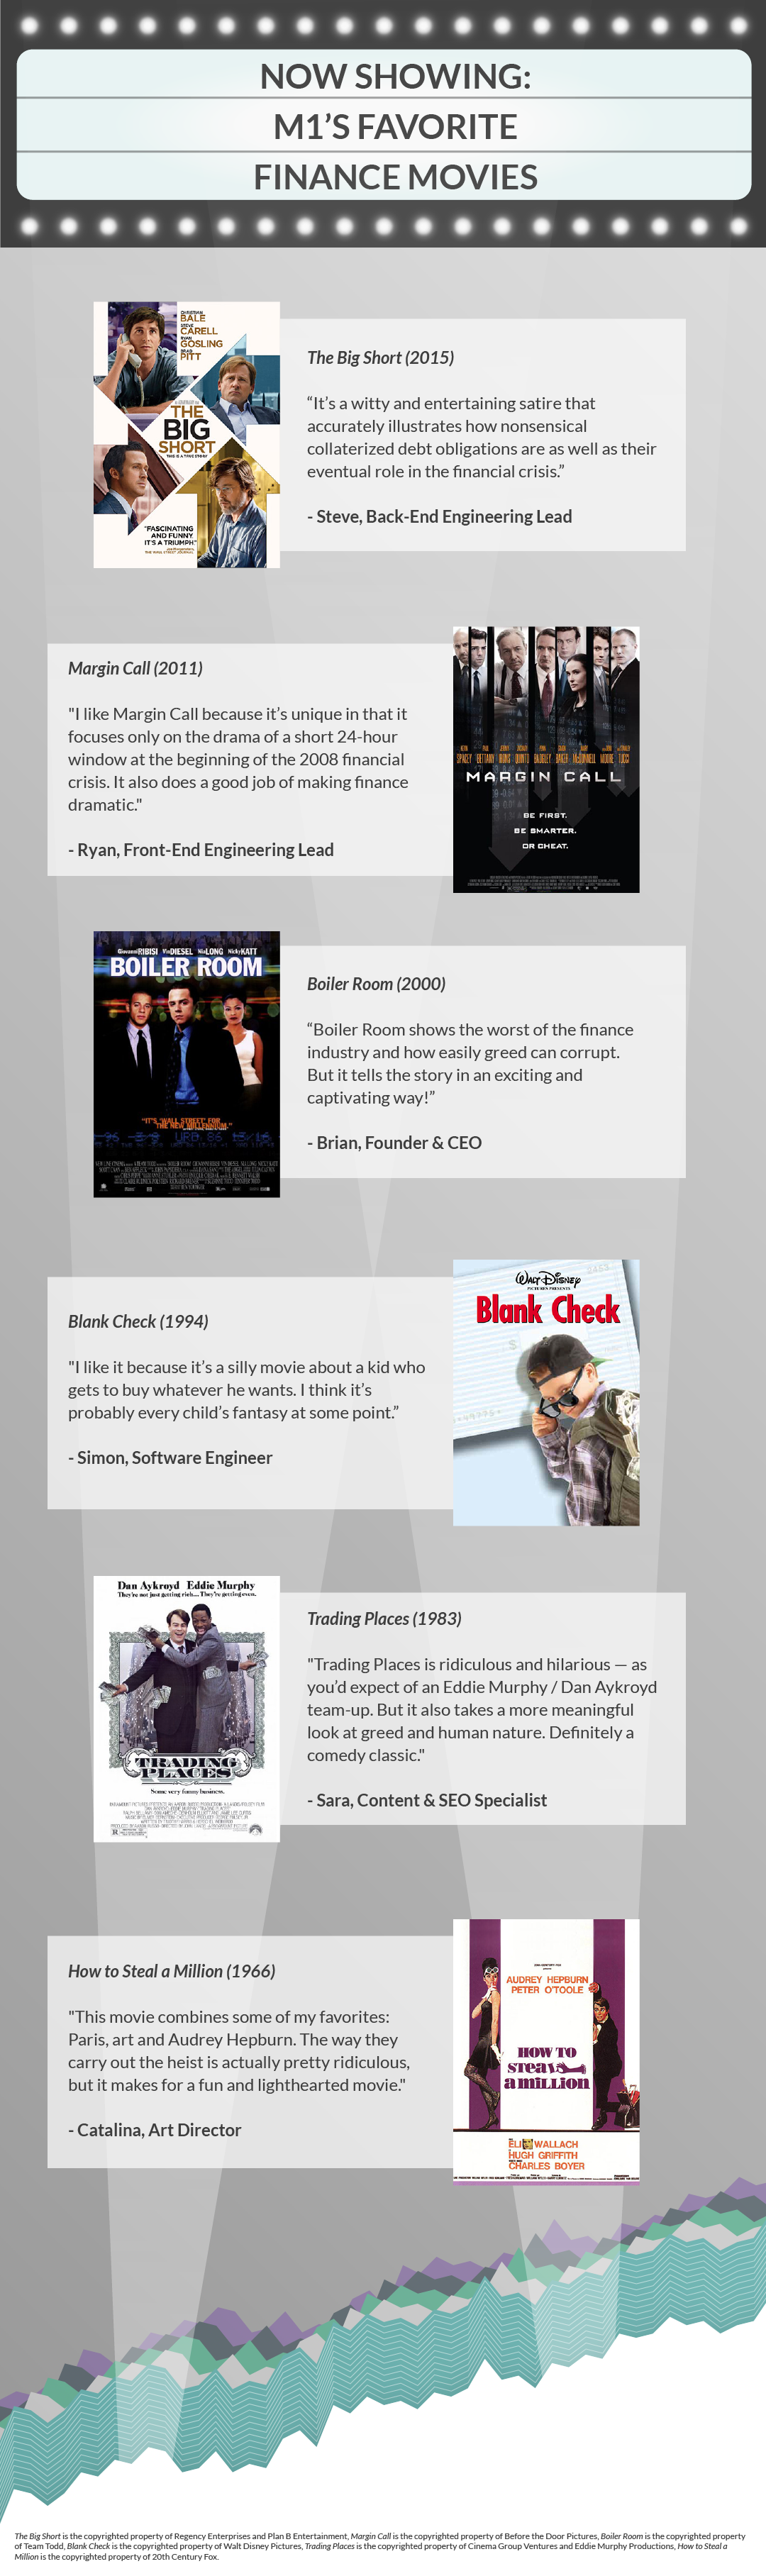 Infographic: Top finance movies and films about the stock market